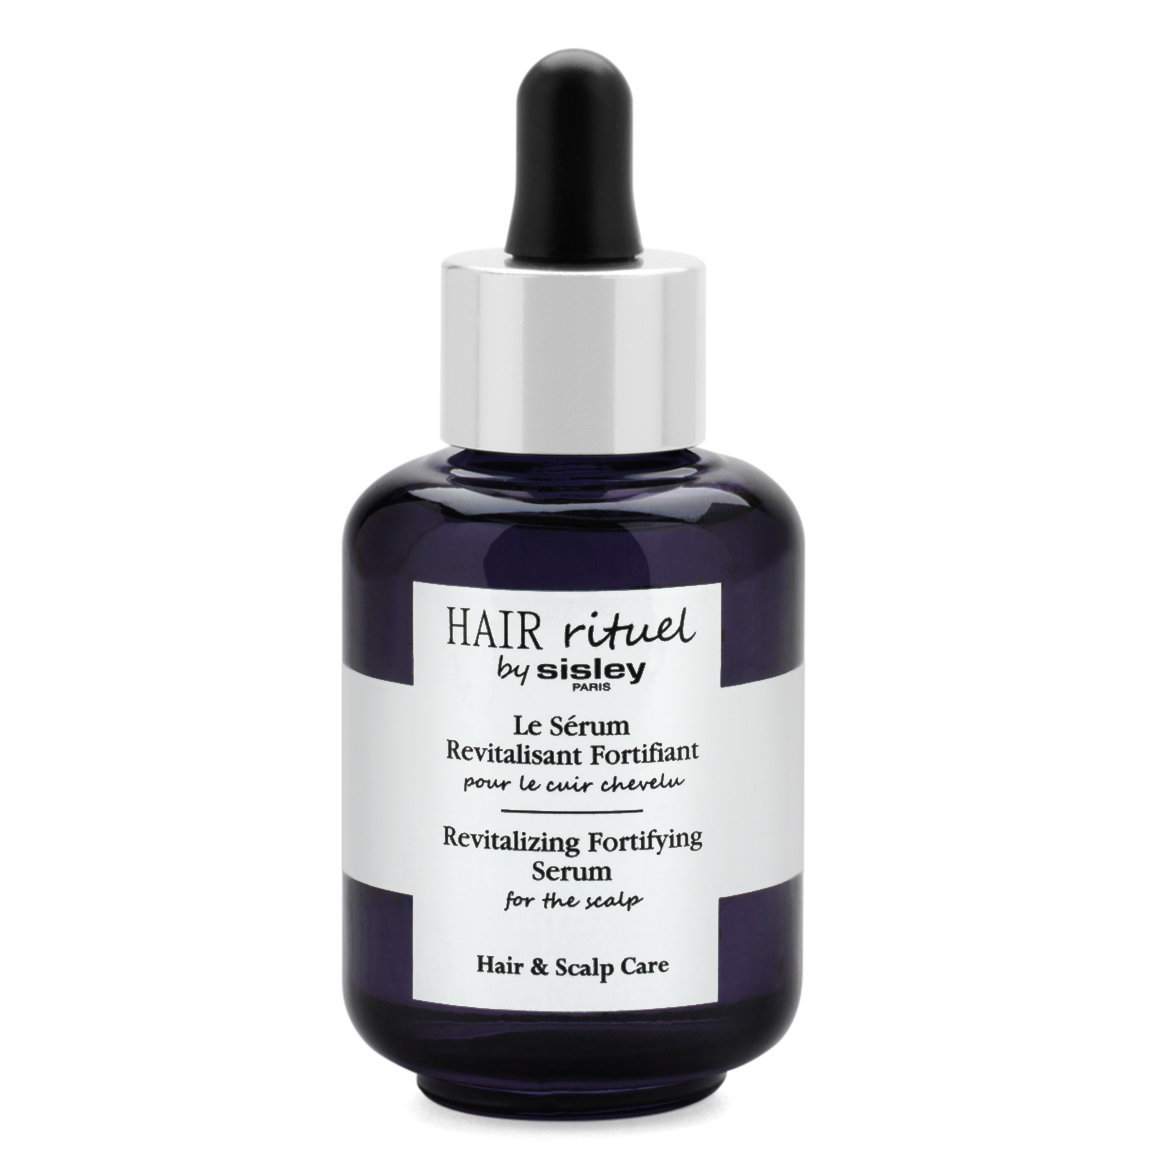 Sisley-Paris Revitalizing Fortifying Serum for the Scalp product smear.